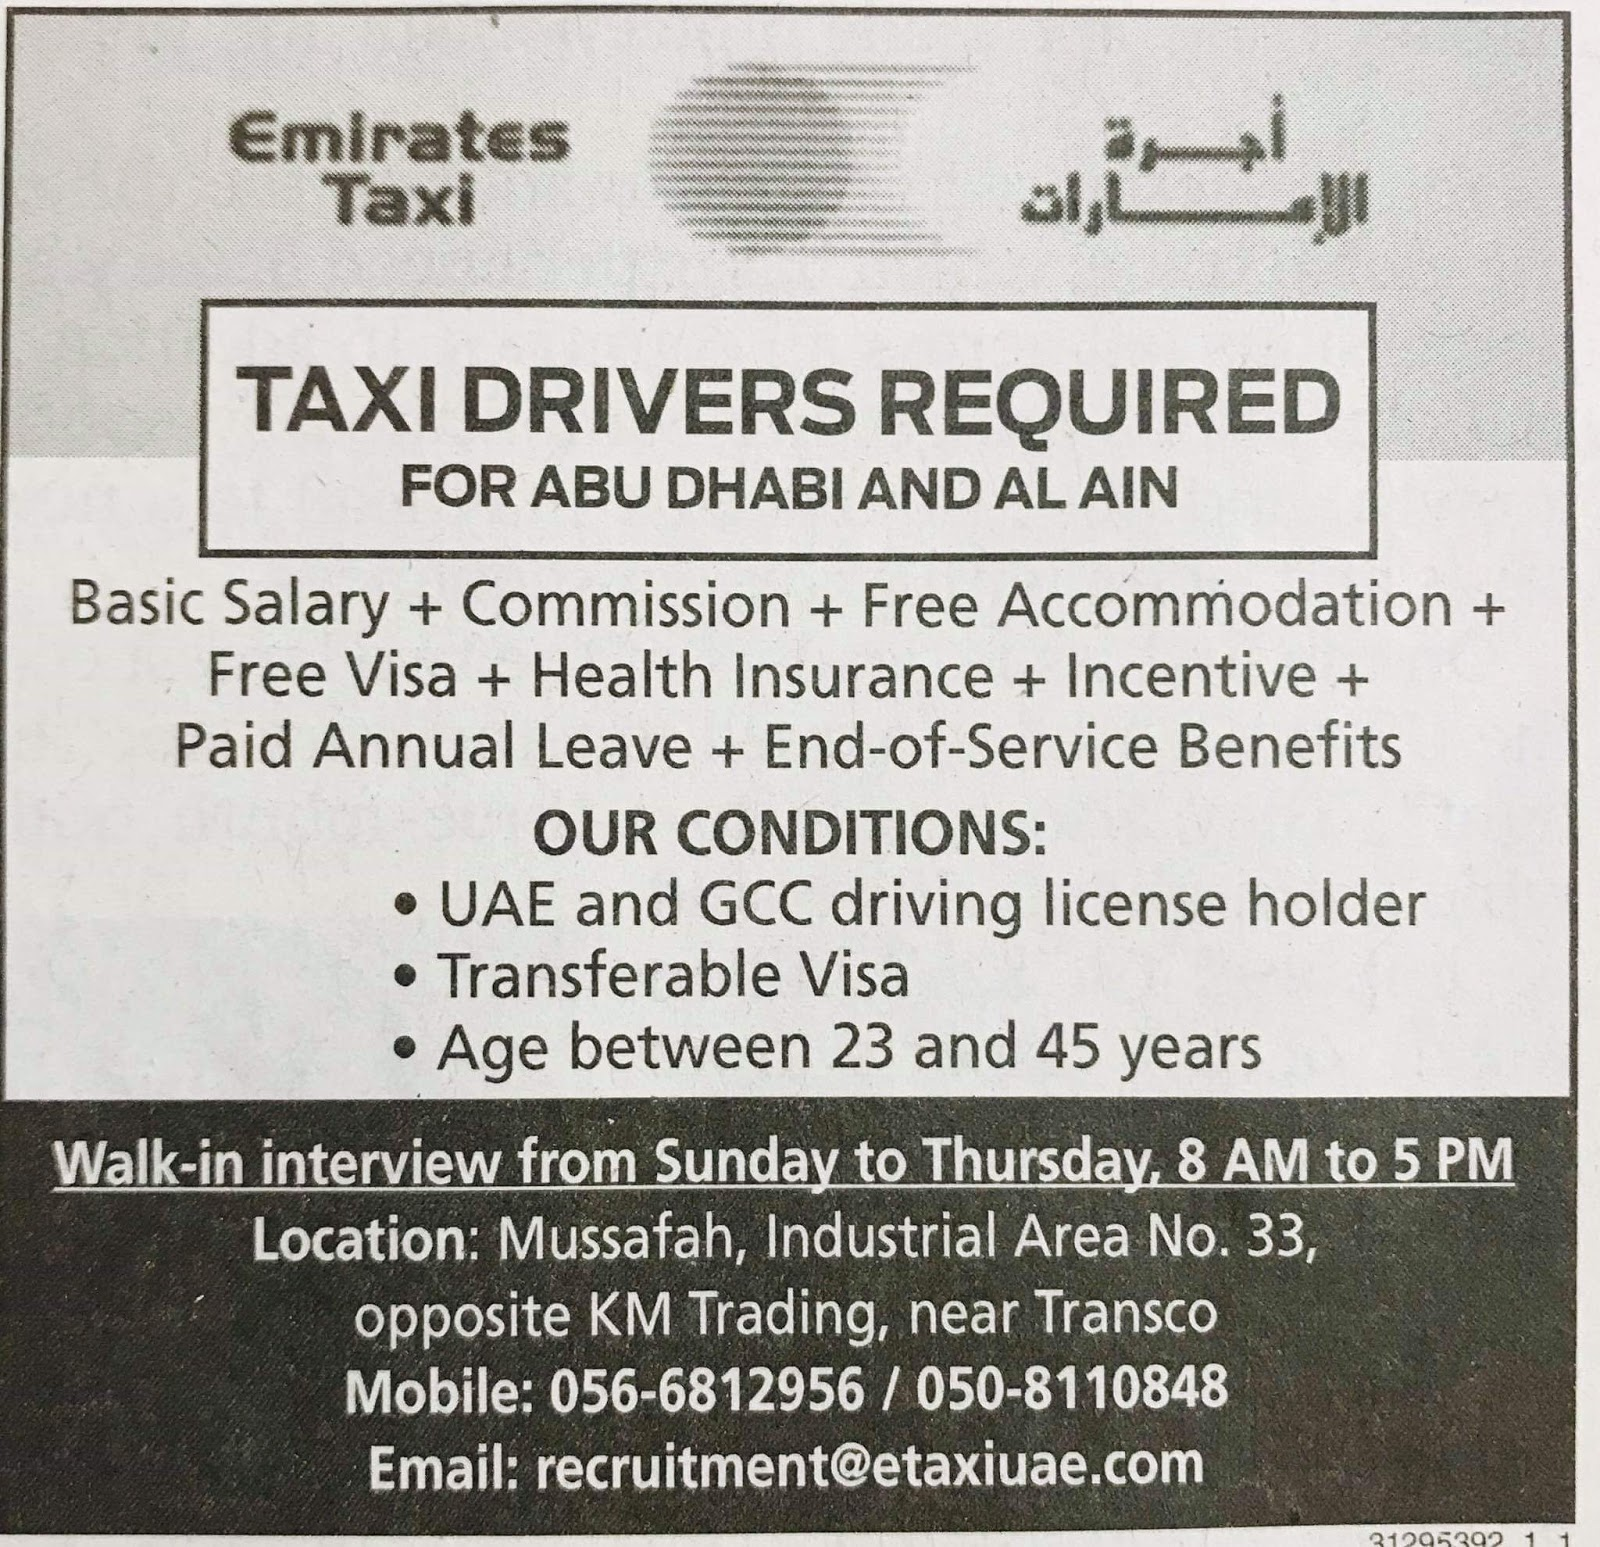 Required Taxi Driver Interview Sunday to Thursday for UAE Local